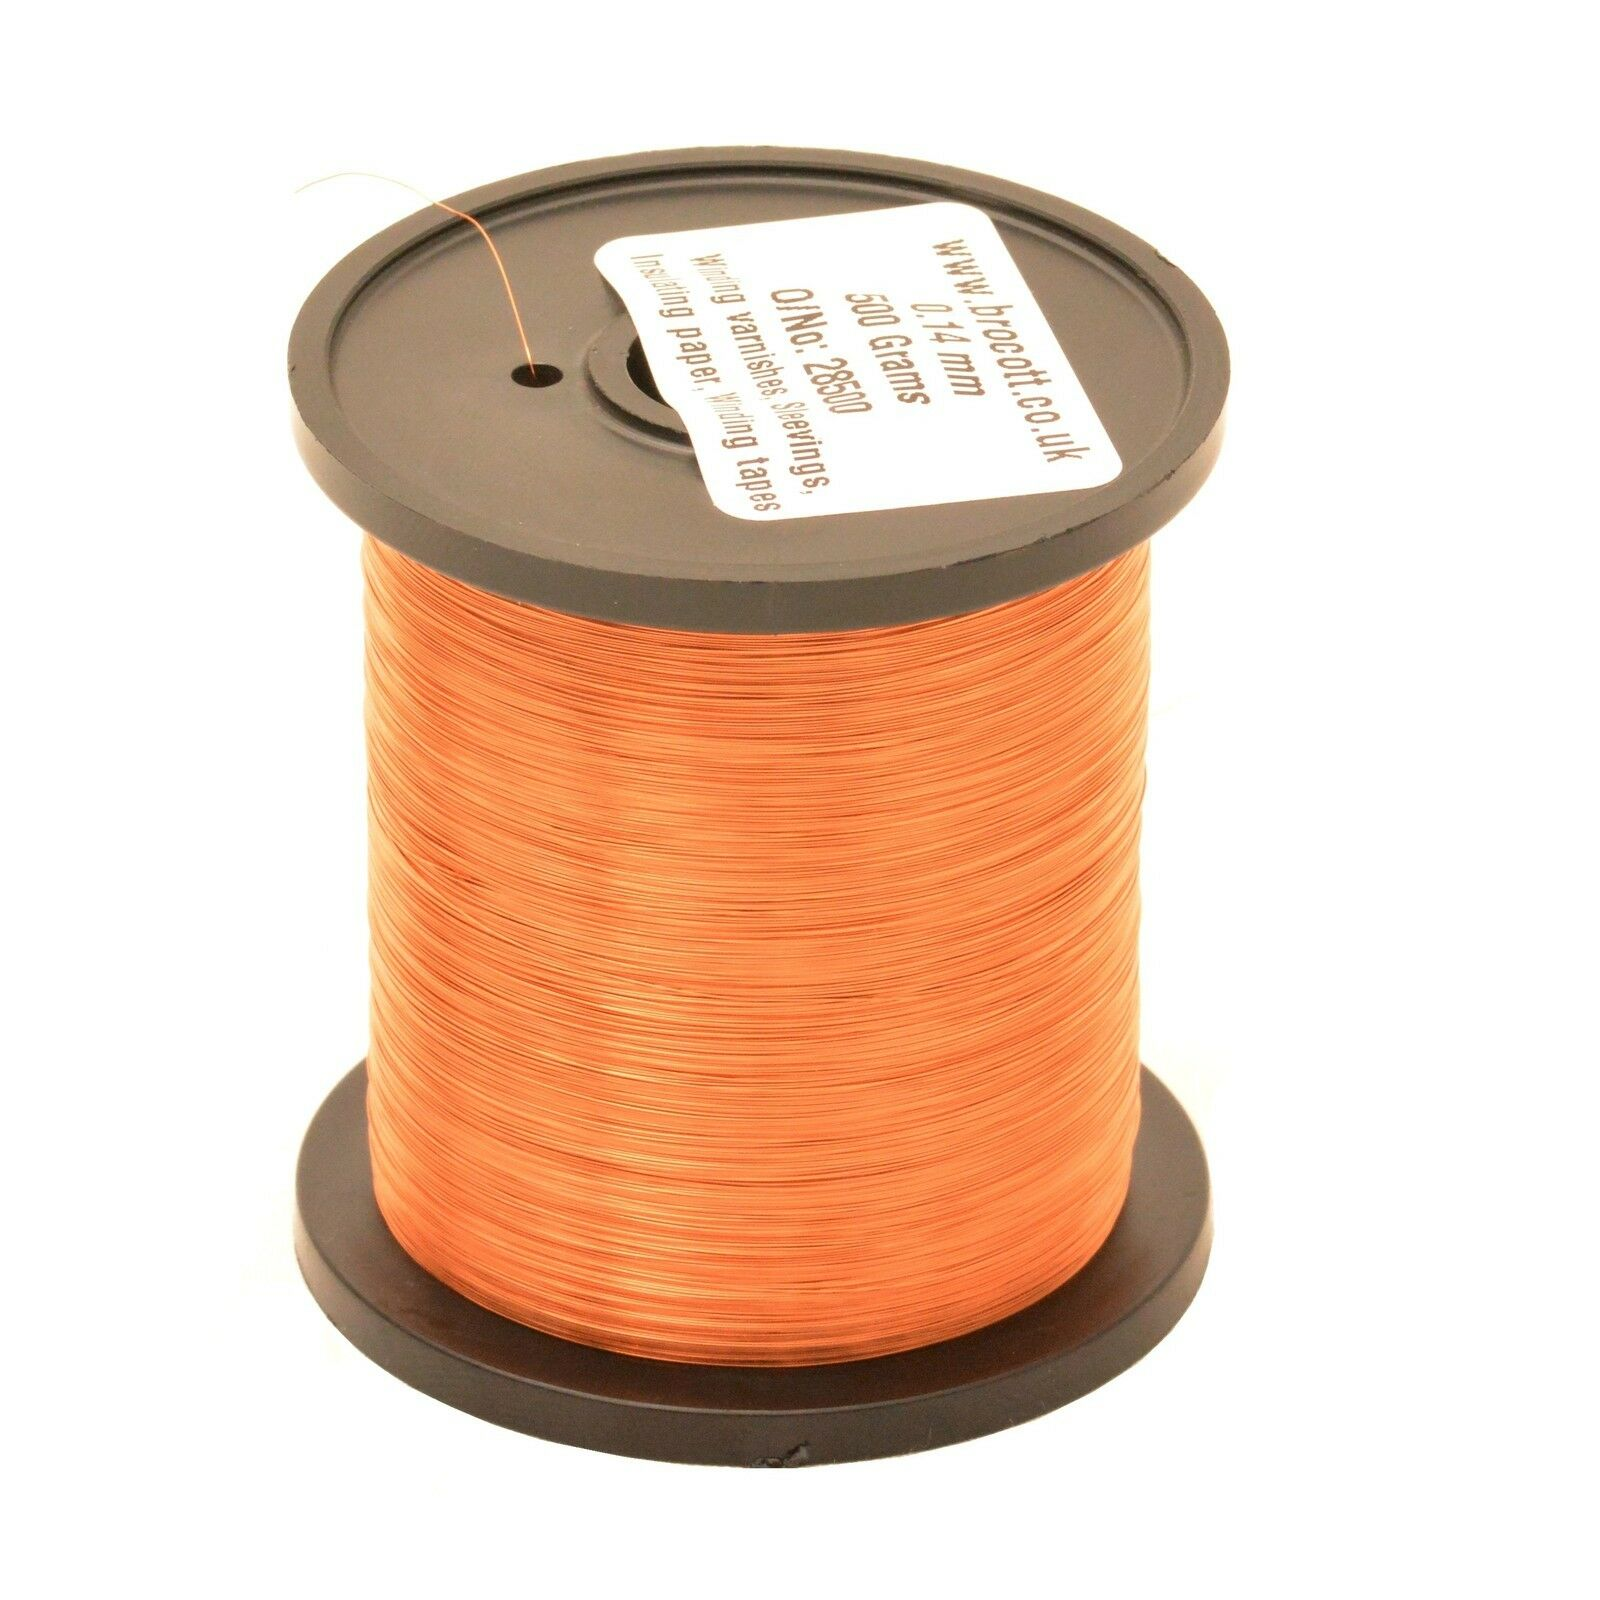 0.45MM ENAMELLED COPPER WIRE - COIL WIRE, HIGH TEMPERATURE MAGNET ...